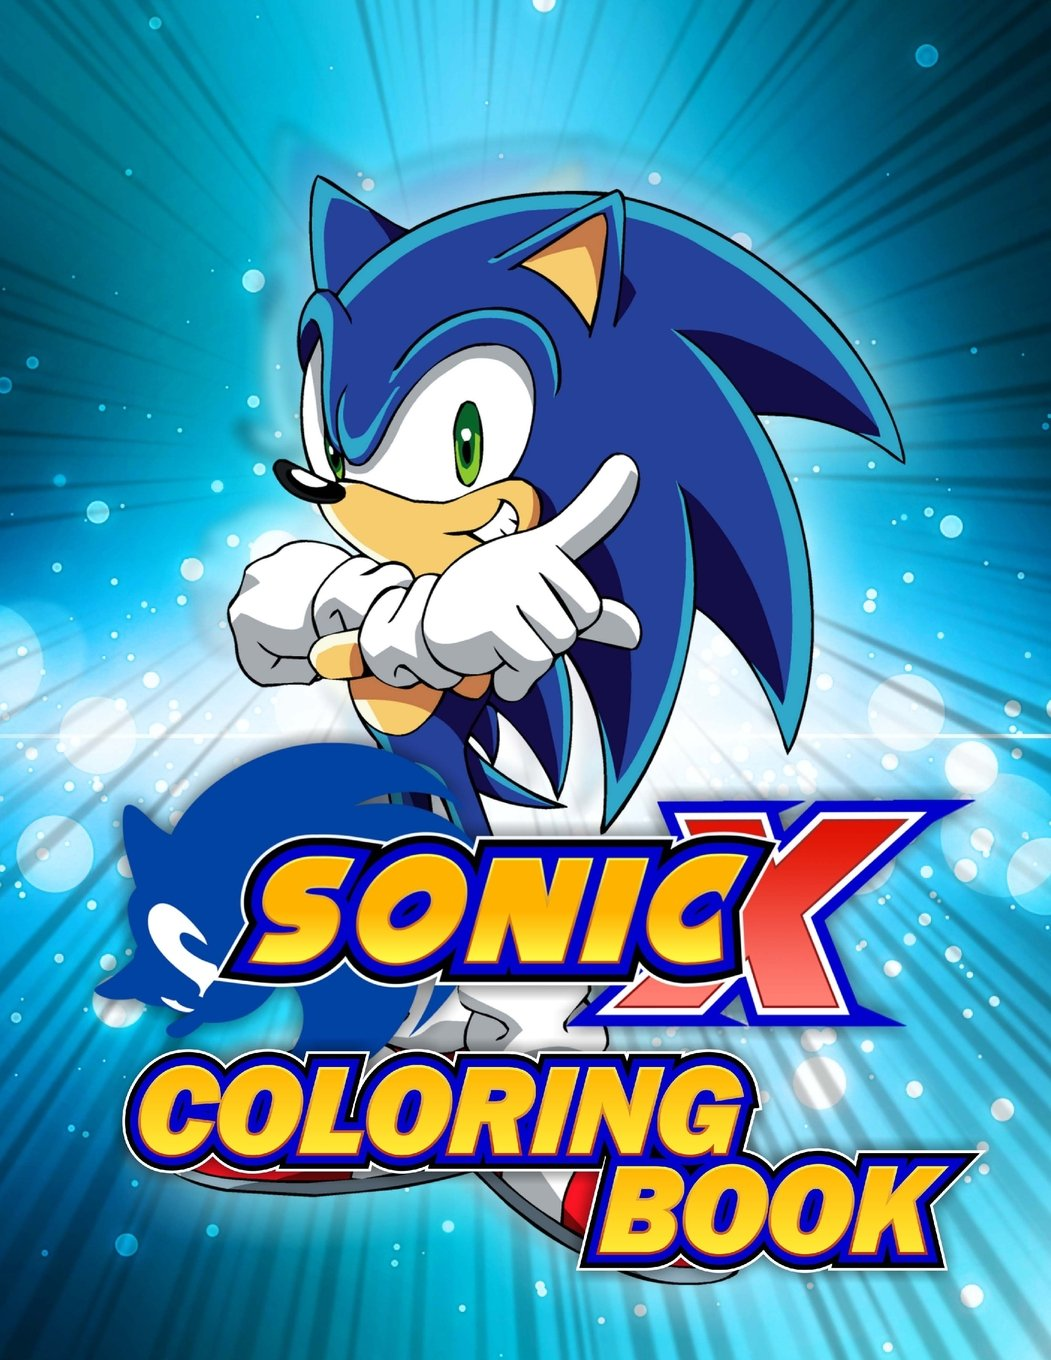 Sonic Coloring Book: Great Activity Book for Kids: Amazon.de ...